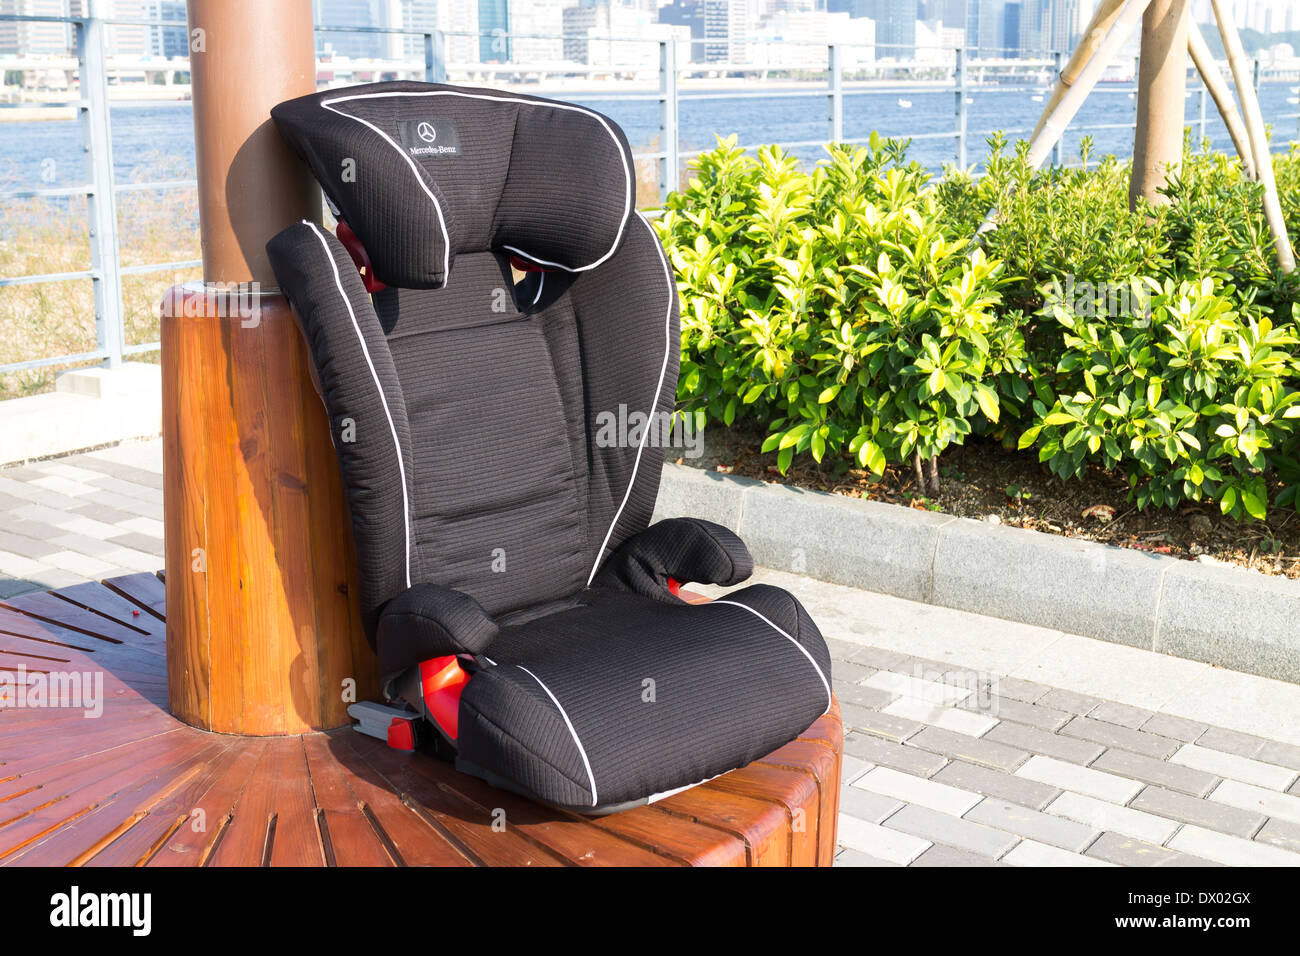 Luxury Baby Car Seat Stock Photos Luxury Baby Car Seat Stock